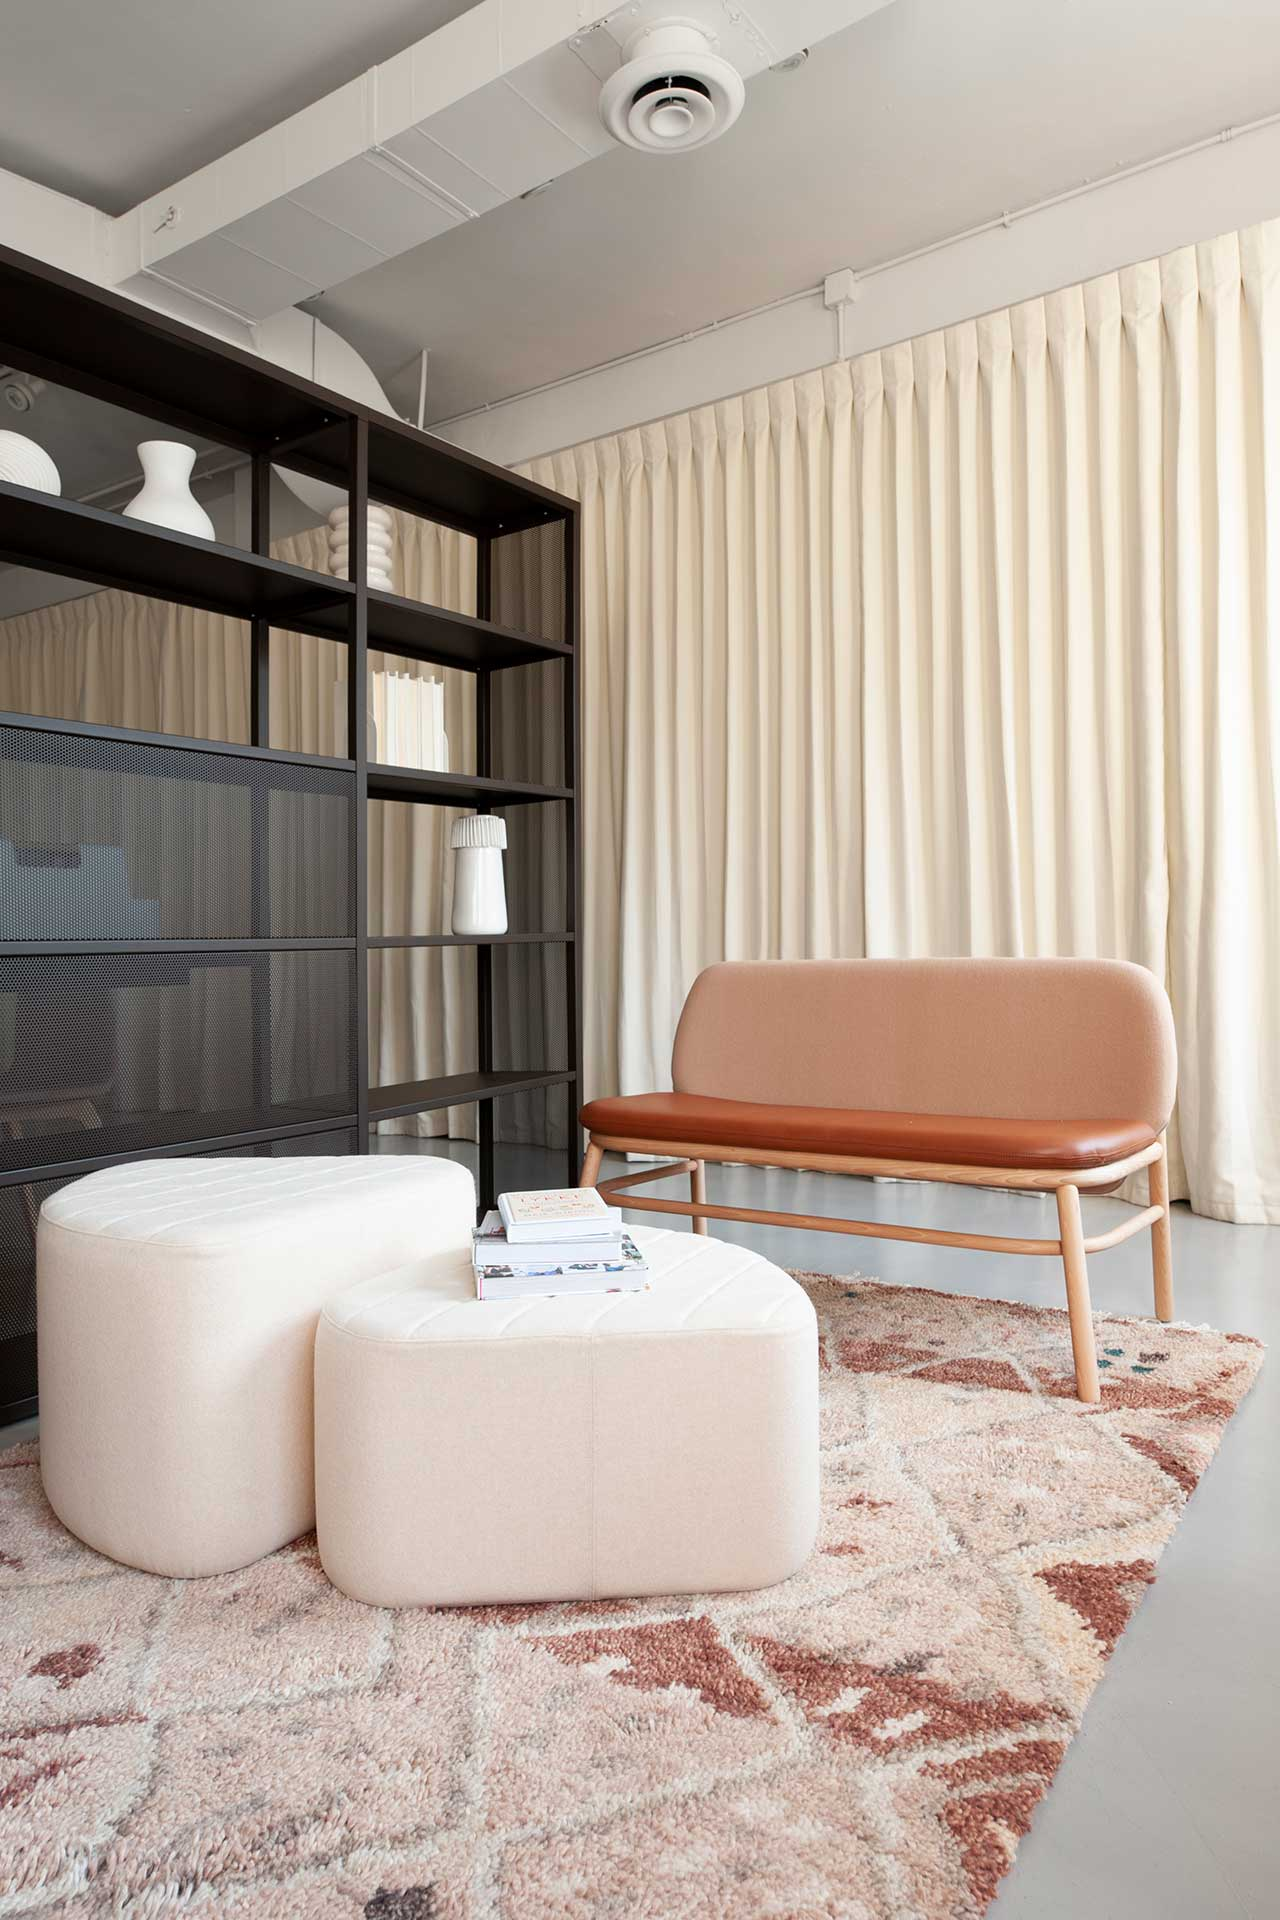 sitting area with modern settee and footstools by large black shelf